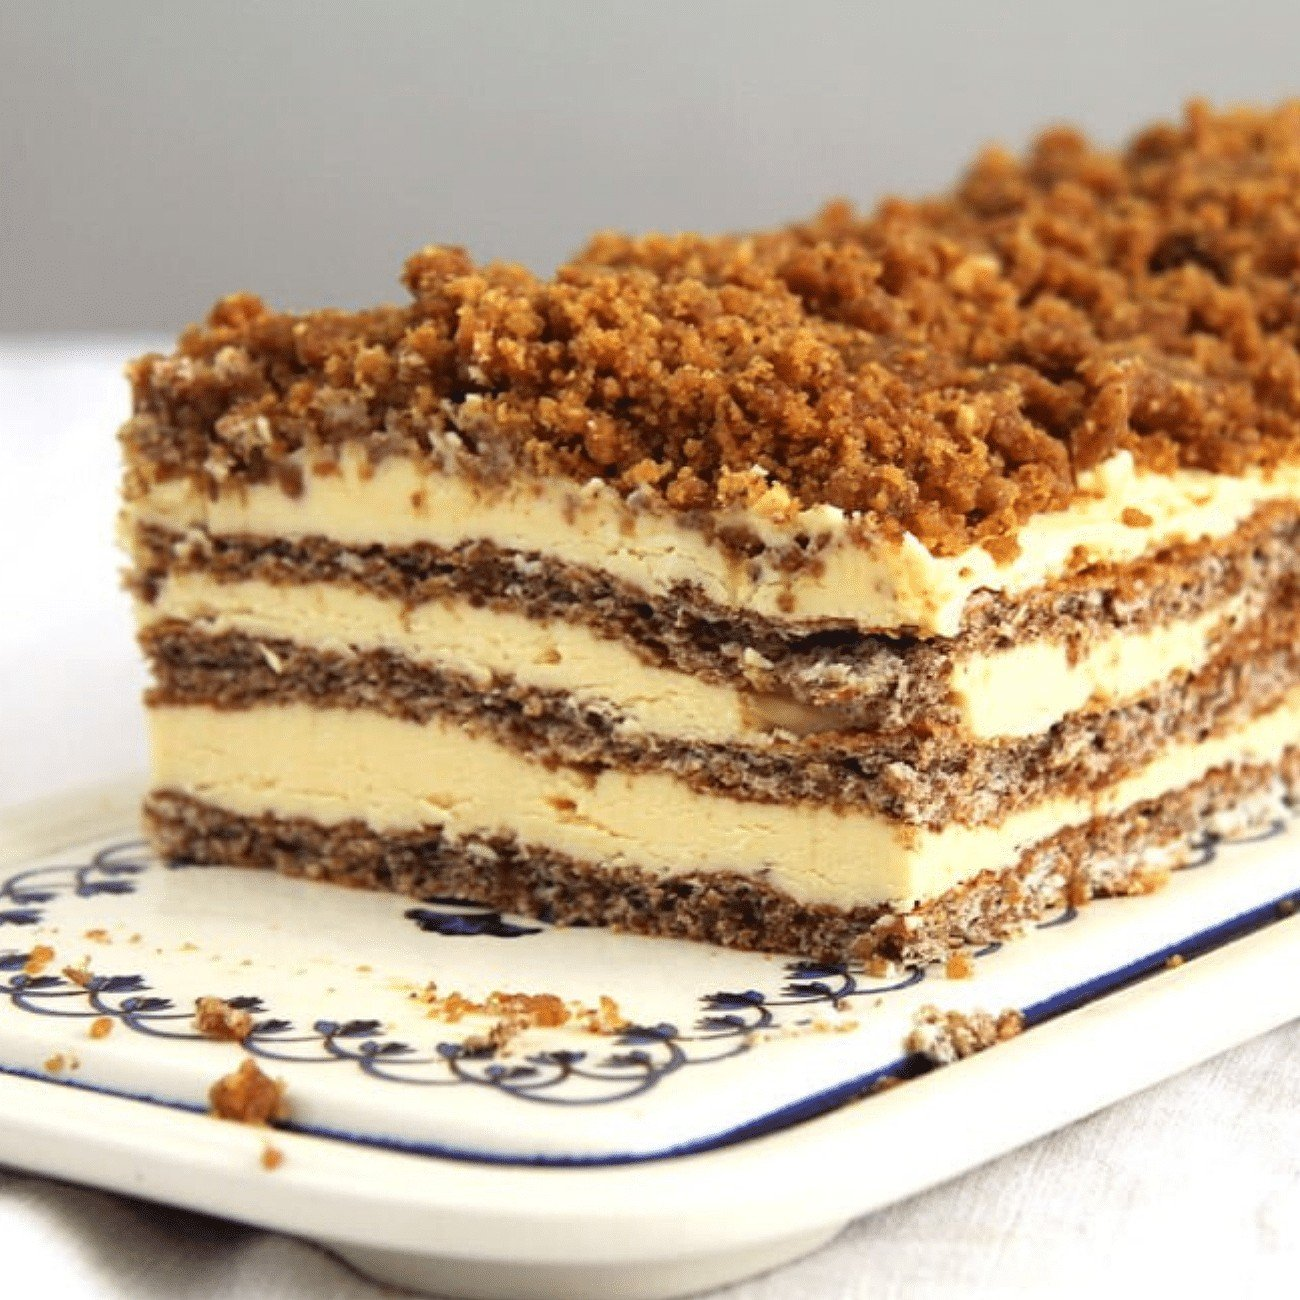 layered Romanian walnut buttercream cake